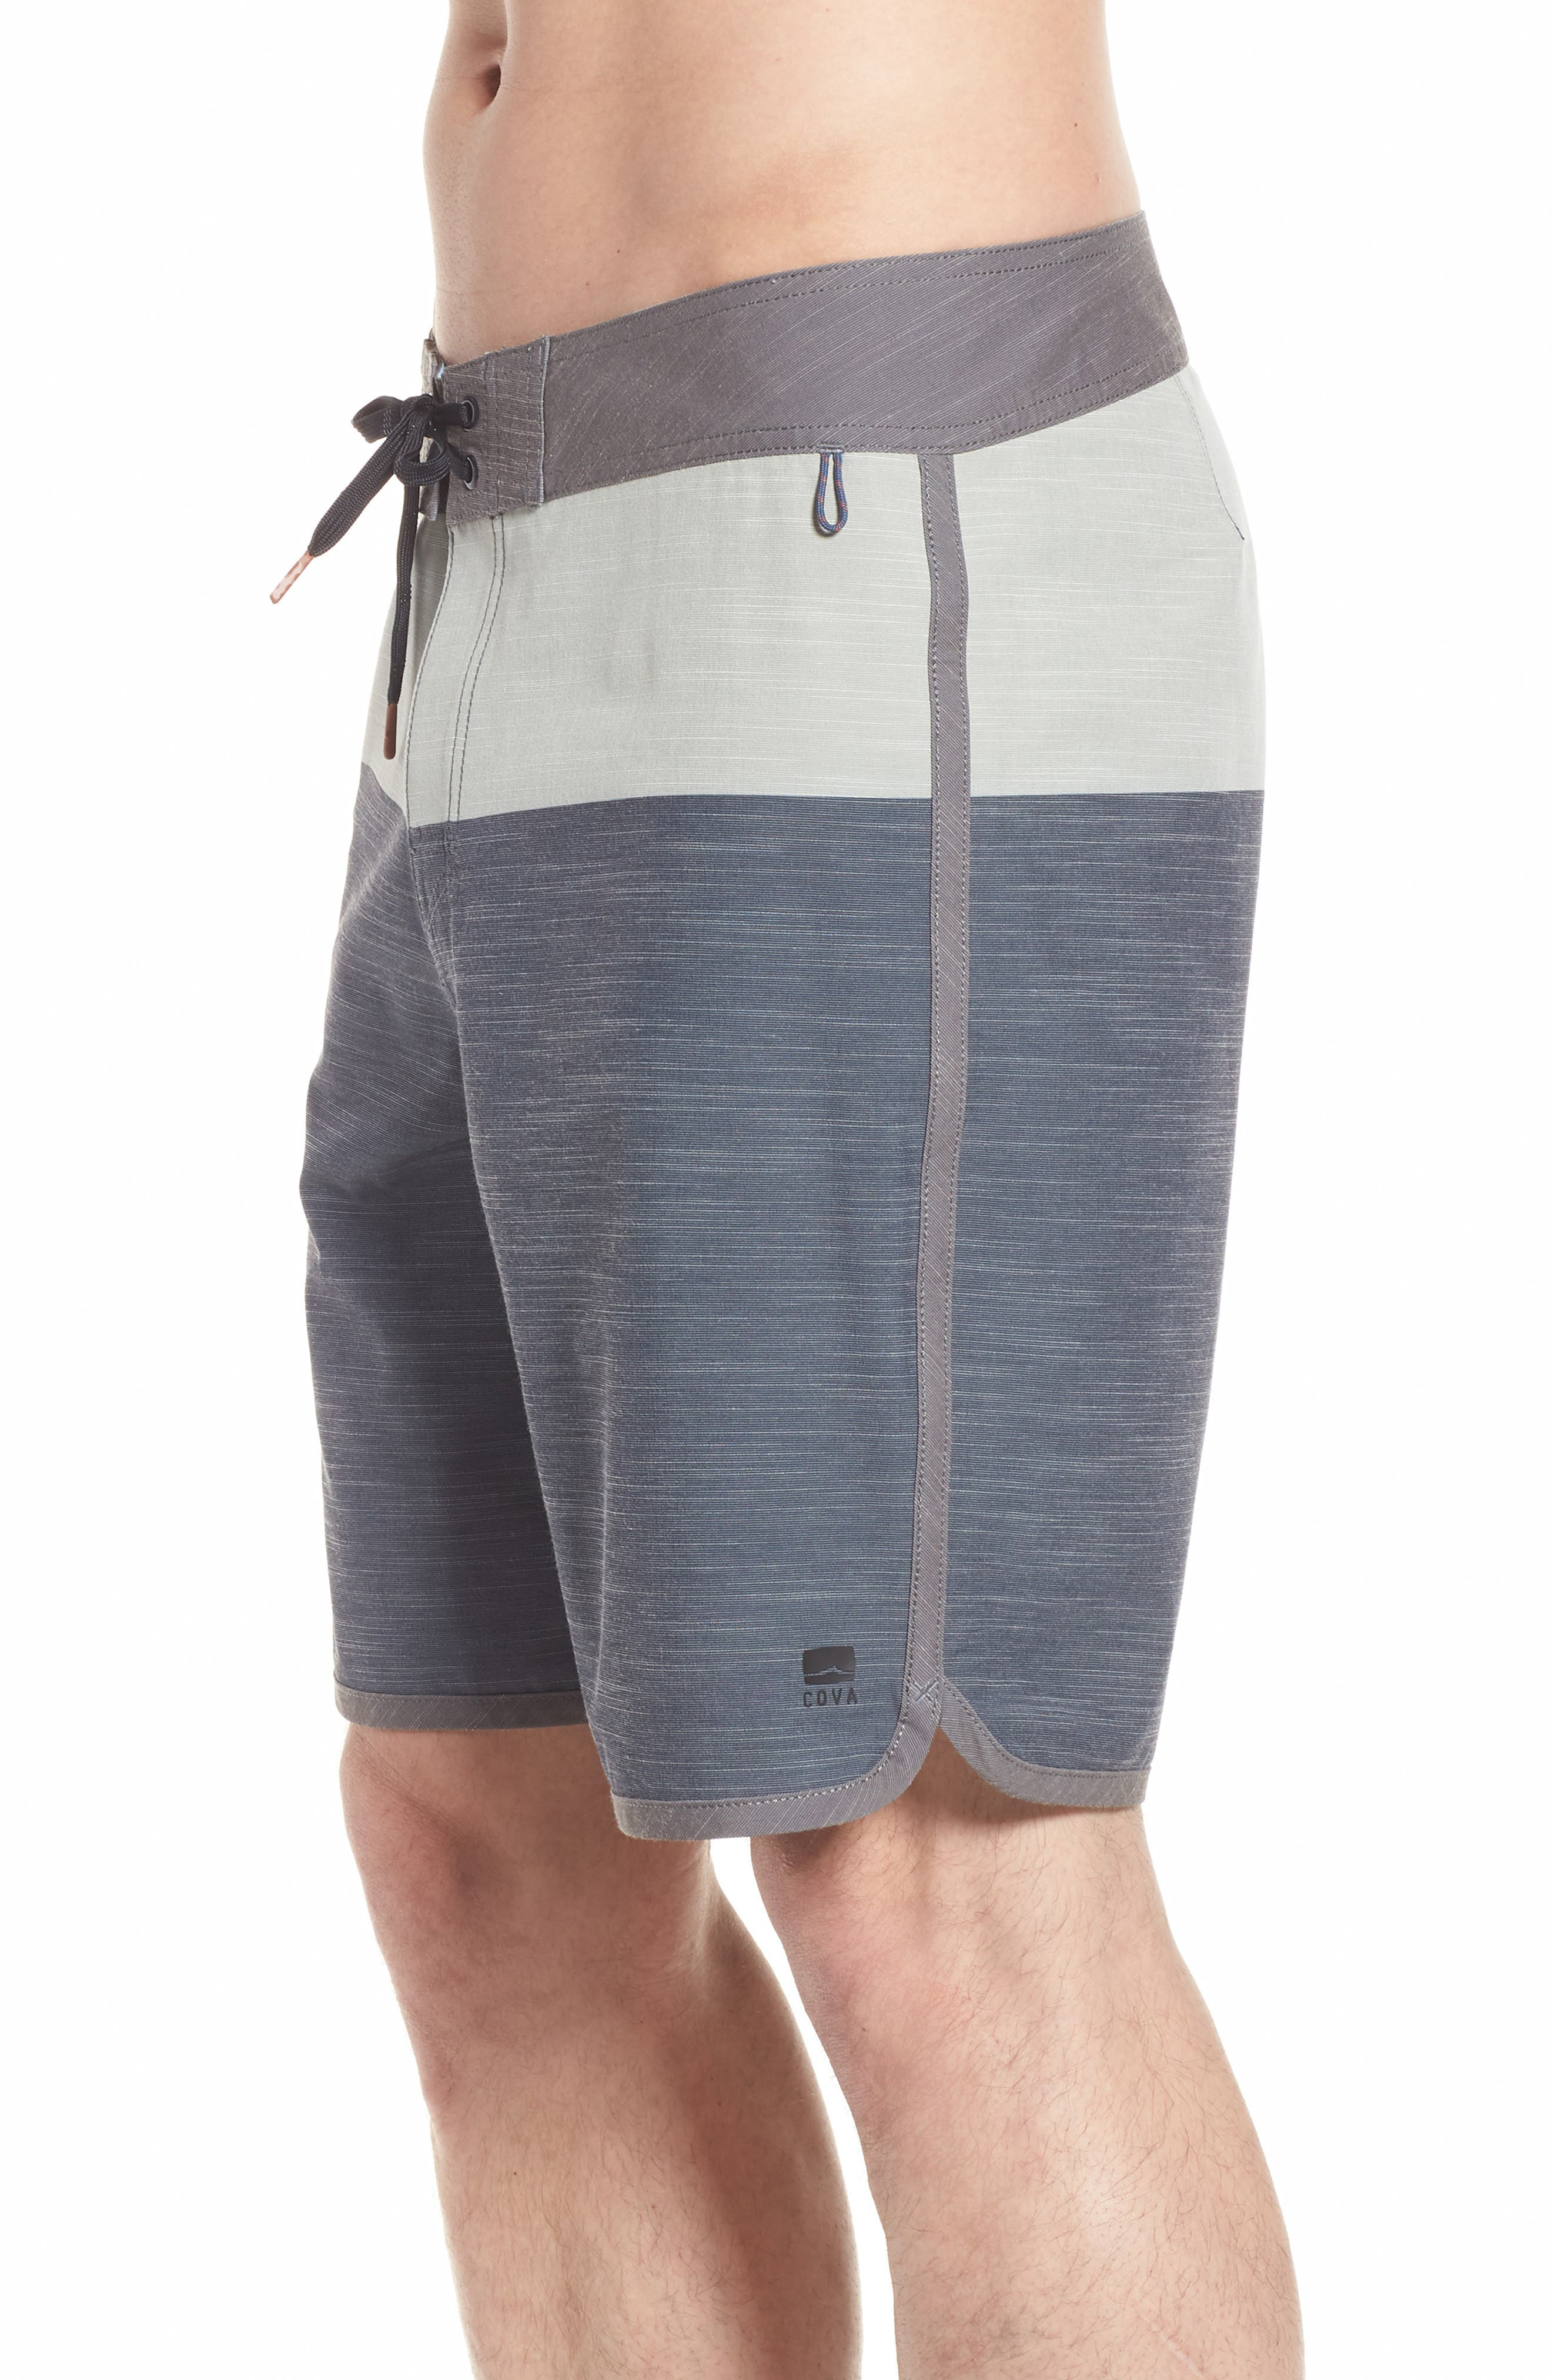 Beachcomber Board Shorts,                             Alternate thumbnail 3, color,                             Charcoal